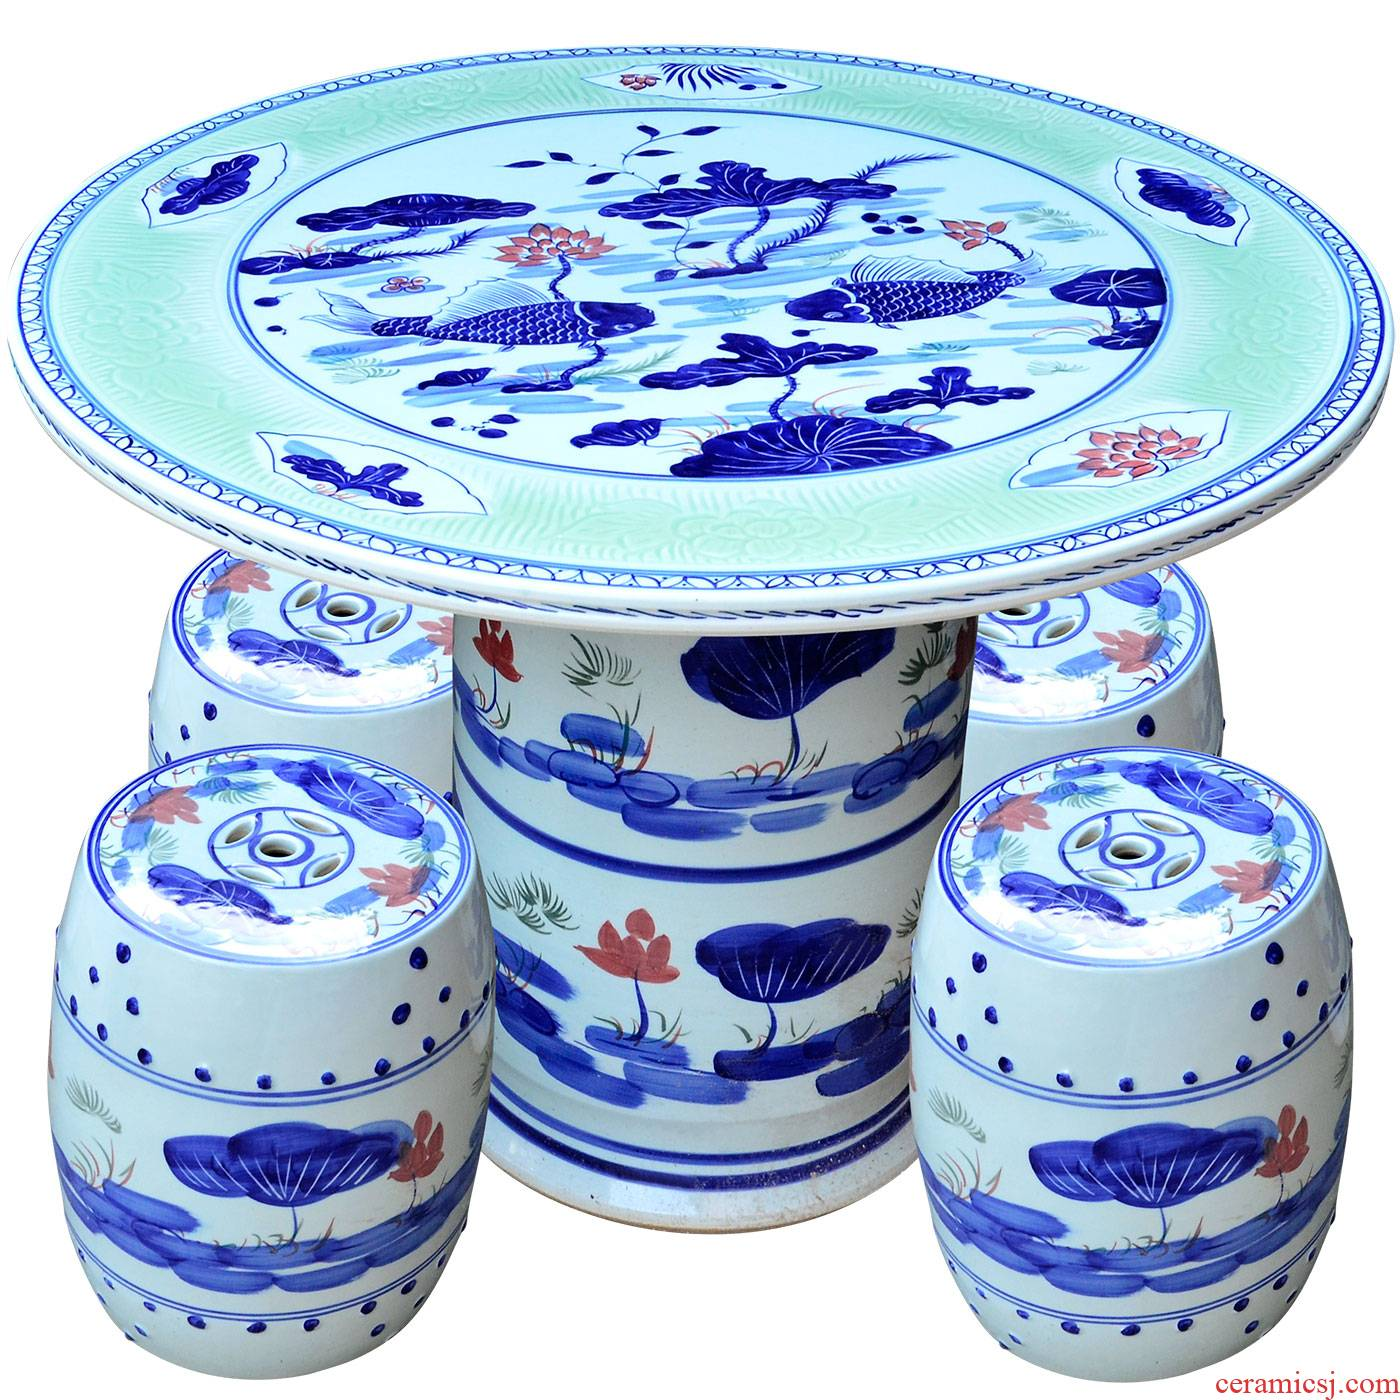 Jingdezhen ceramics archaize ceramic table who suit is suing garden decorative garden balcony garden chairs and tables